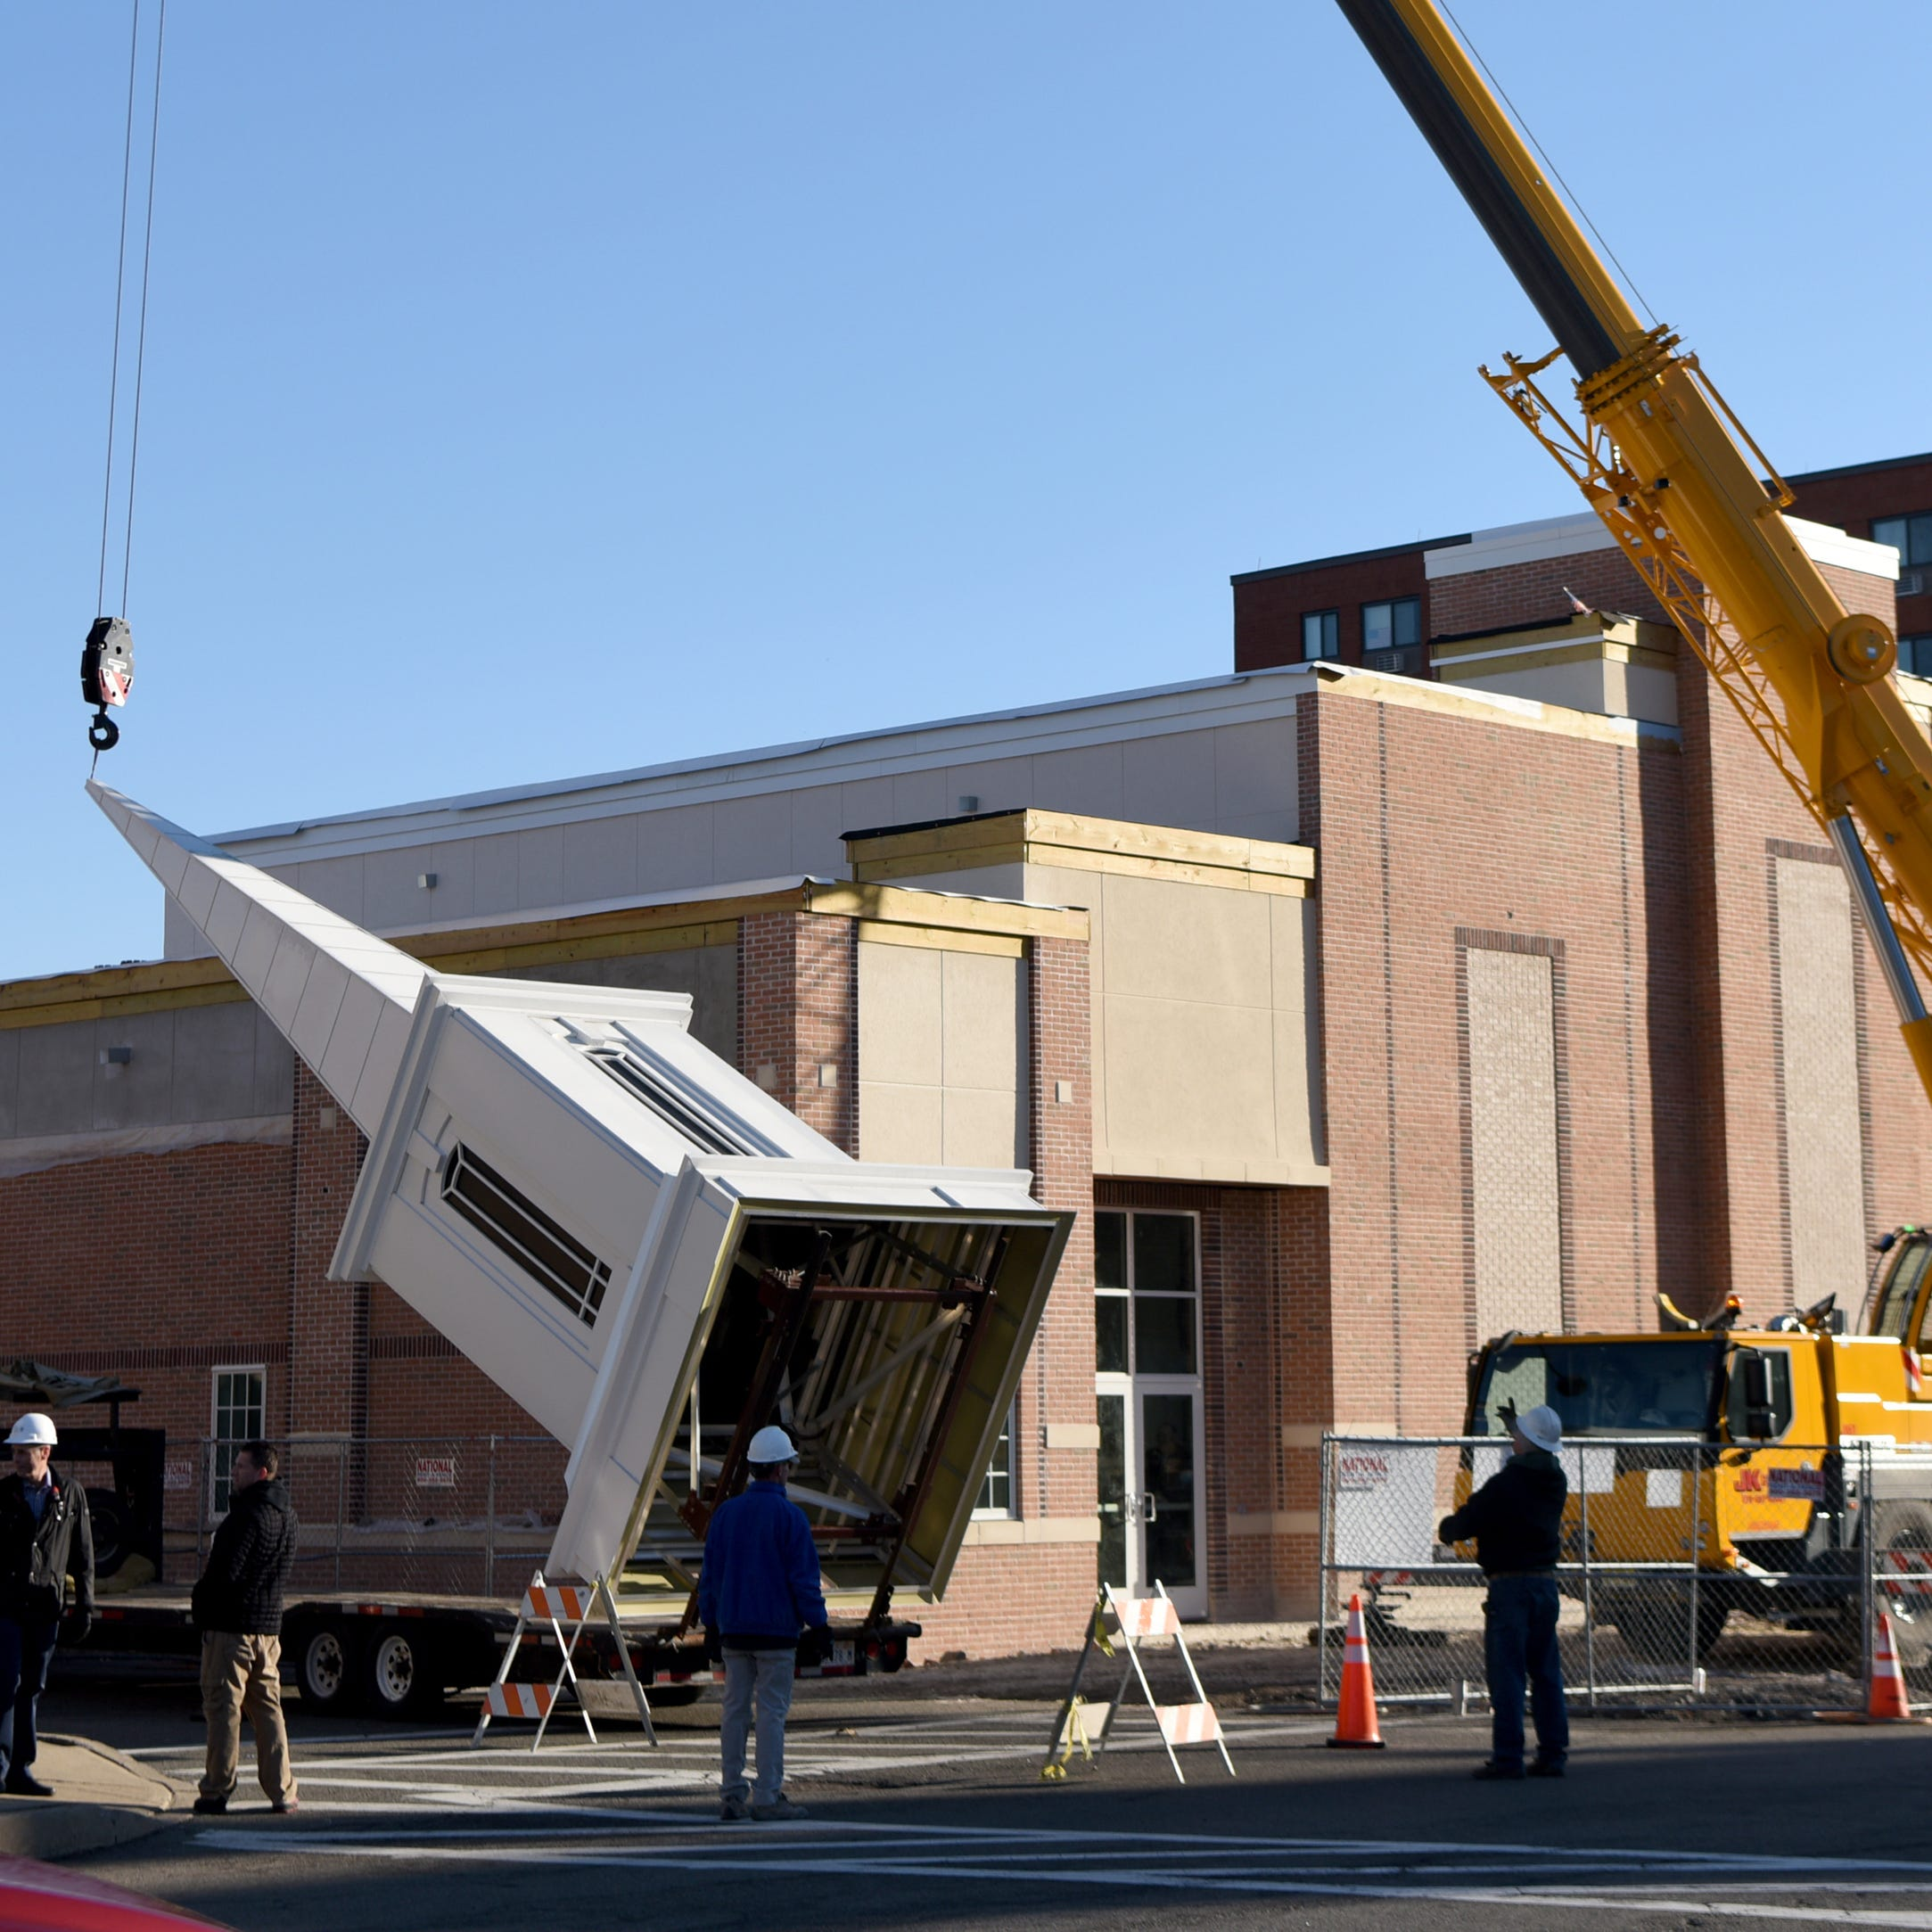 Crane tops new Dover church with 40-foot tall steeple